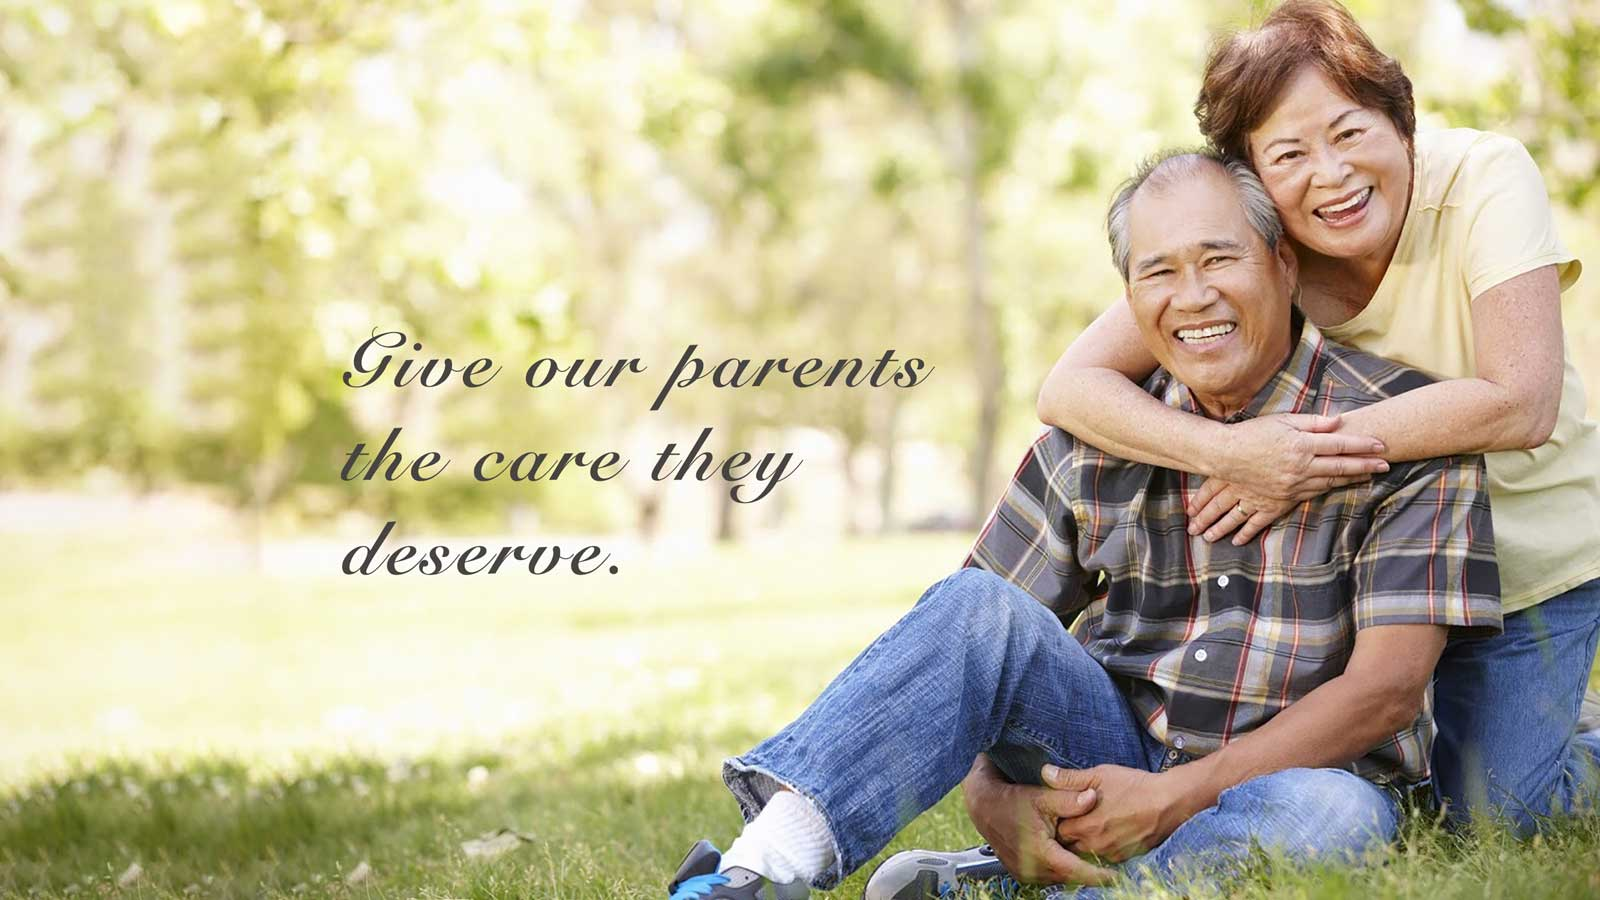 Giving our parents the care they deserve